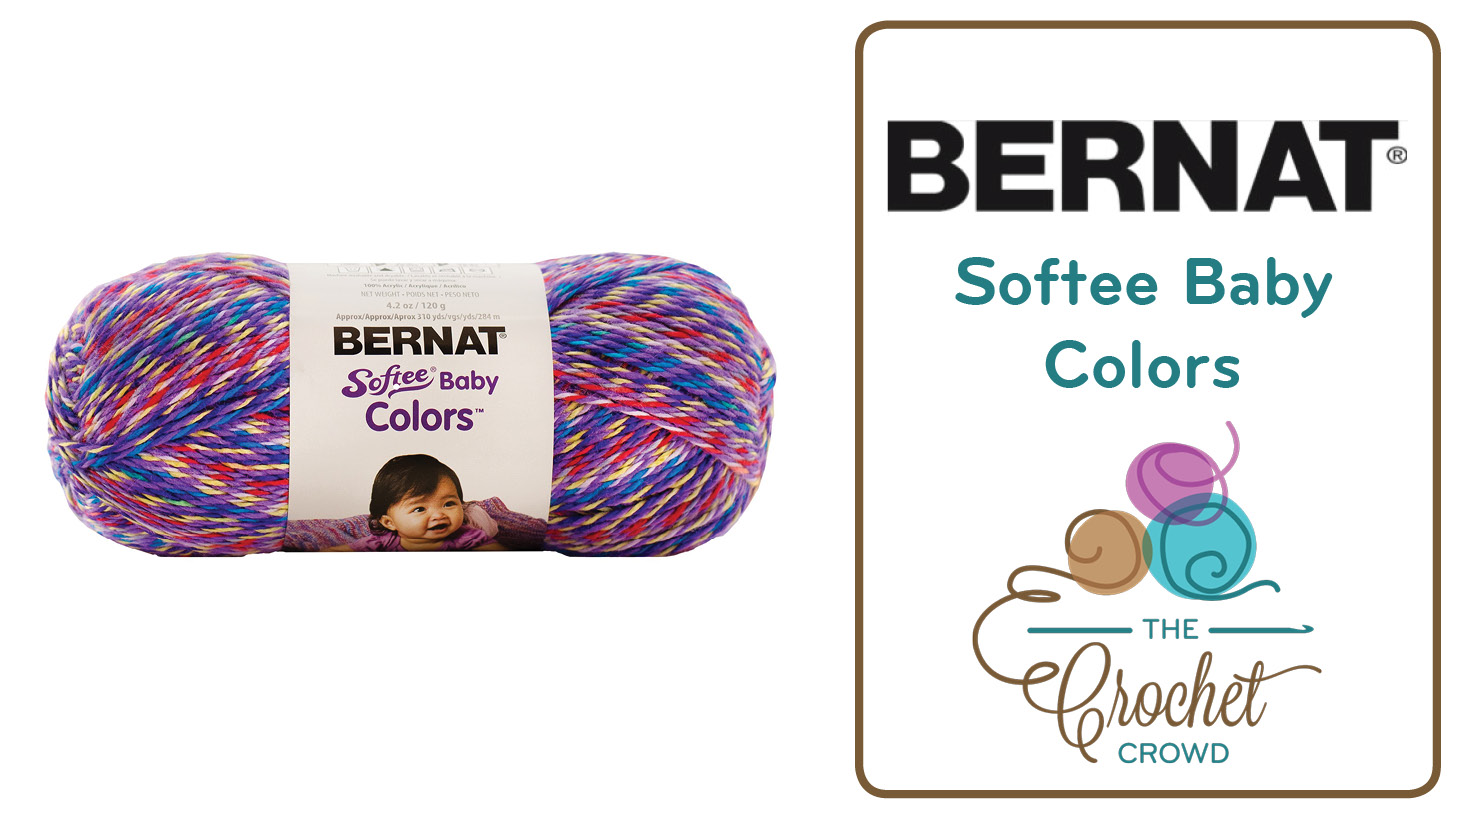 37f9a6614824 What To Do With Bernat Softee Baby Colors Yarn